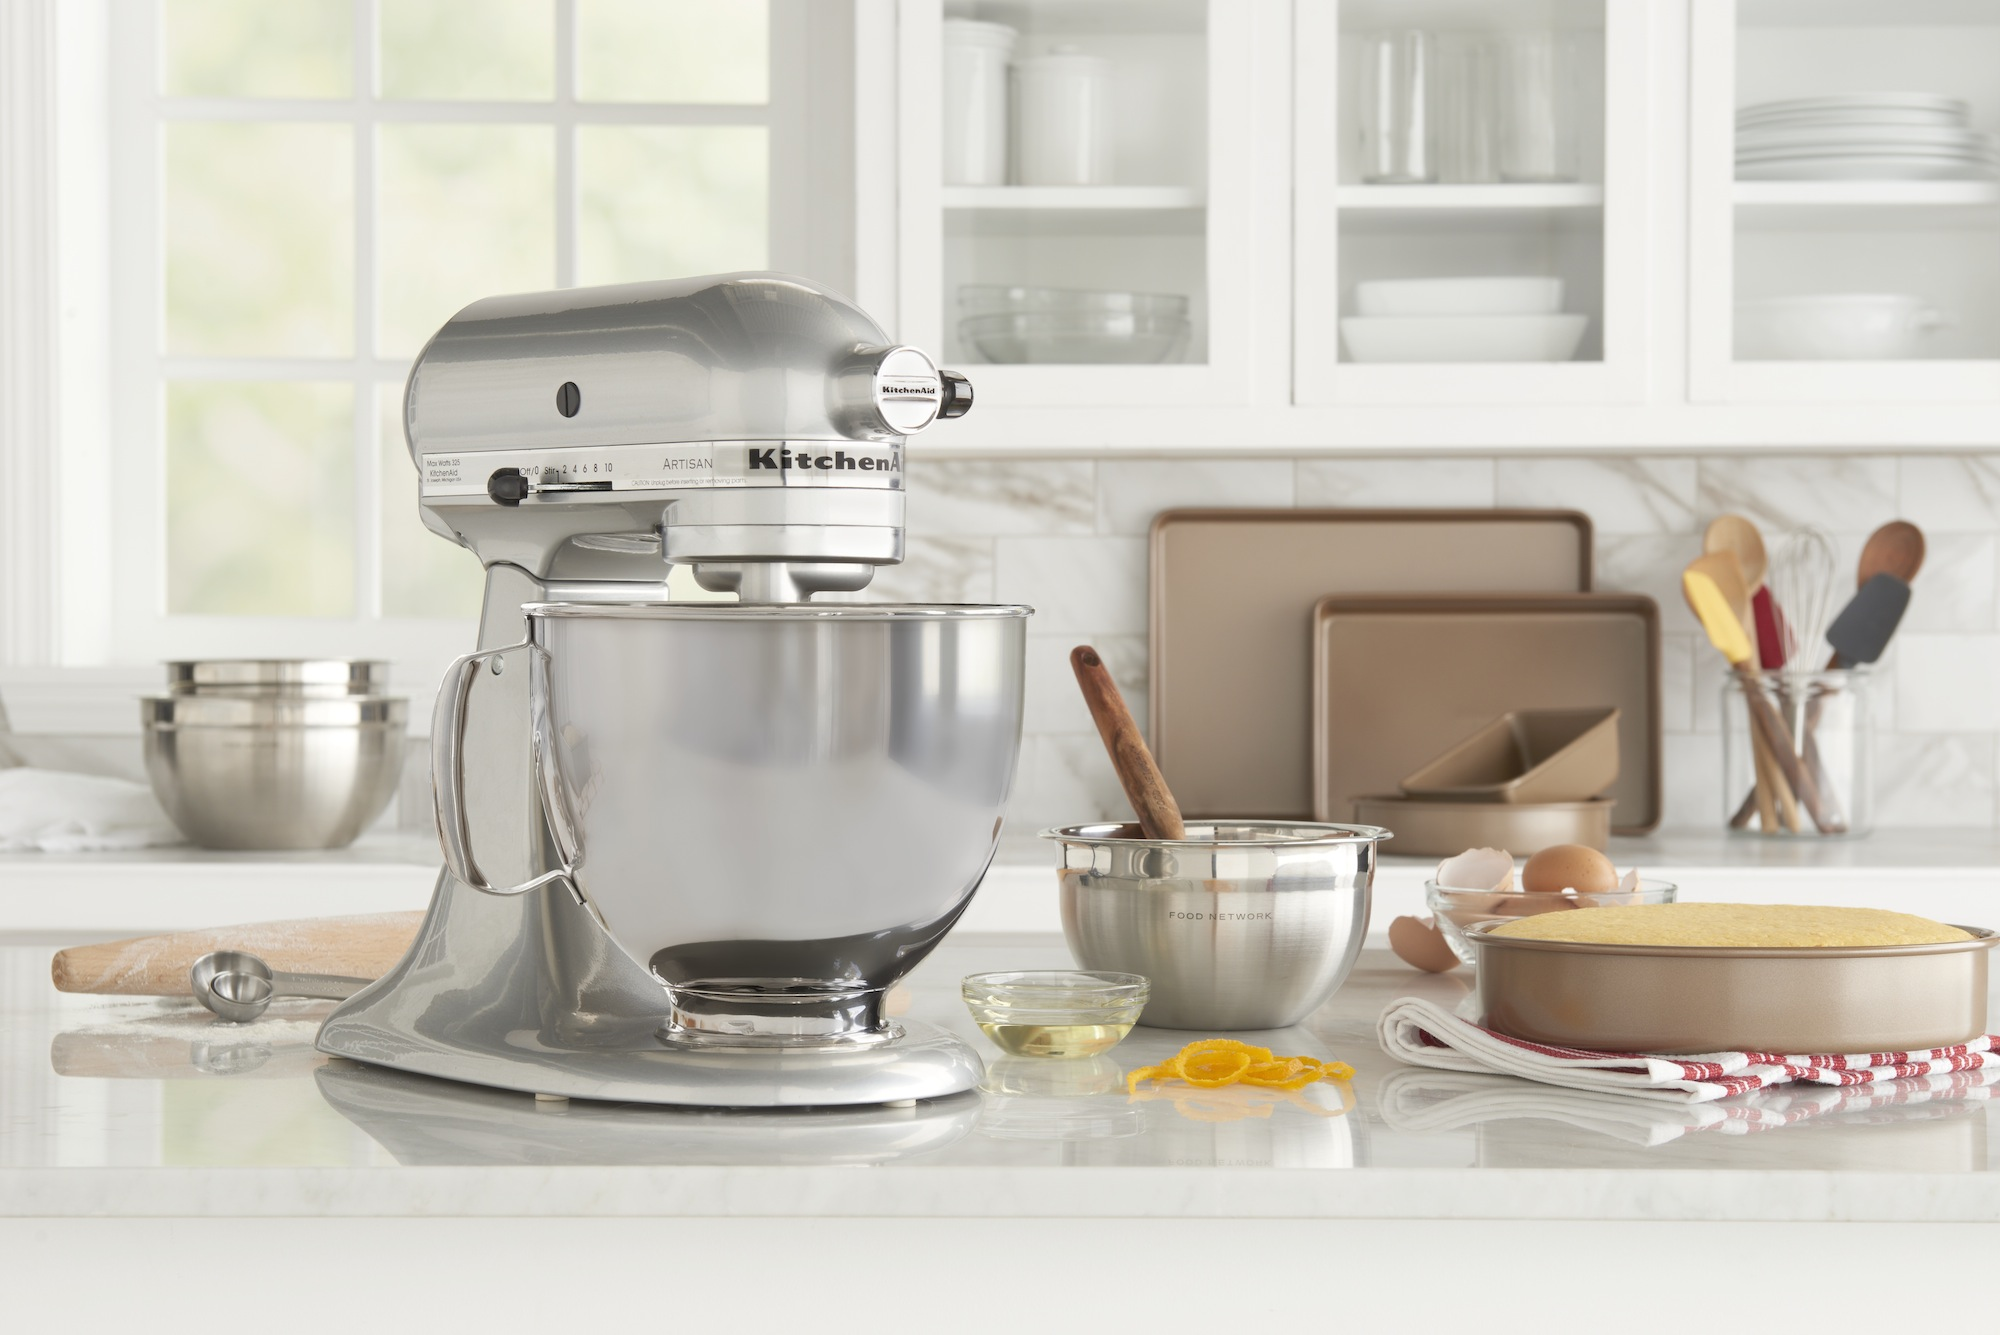 kohls mixer;Ways to Save On Your Wedding Registry